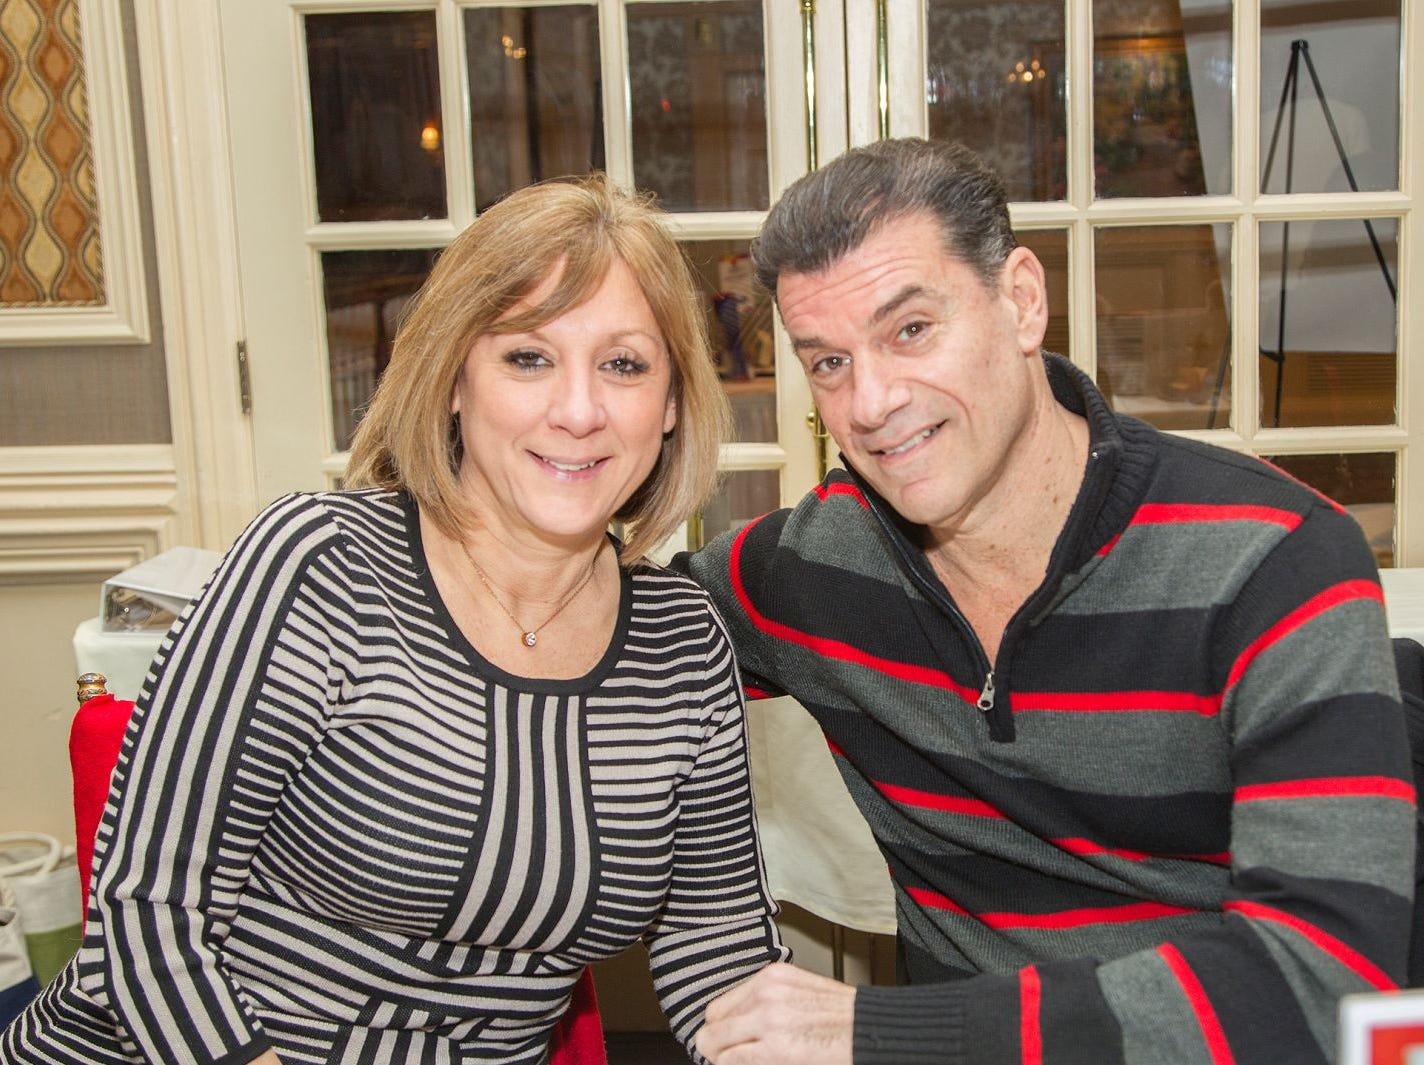 Evelyn Cuciti, John Bianco.  A Night at the Races hosted by OASIS at the Brownstone in Paterson. 2/7/2019